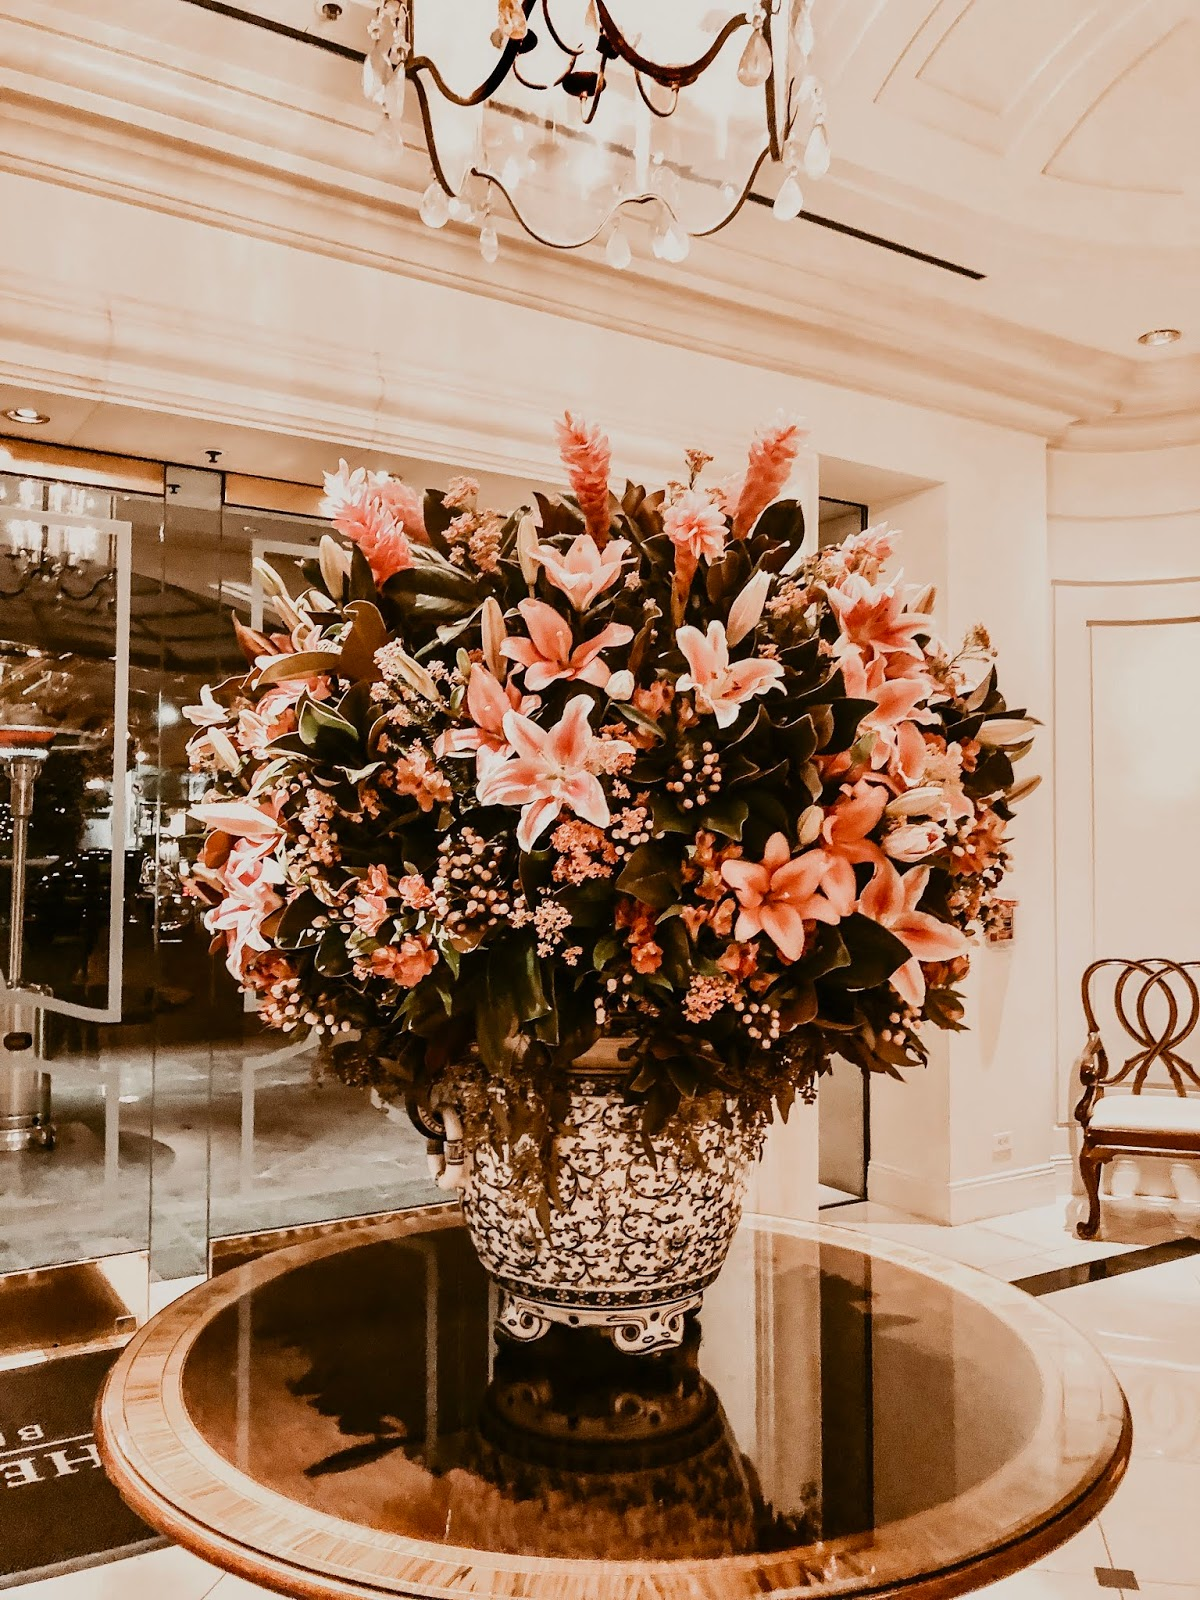 peninsula-hotel-beverly-hills-california-hallway-flower-arrangement-five-things-friday-favorite-links-around-the-web